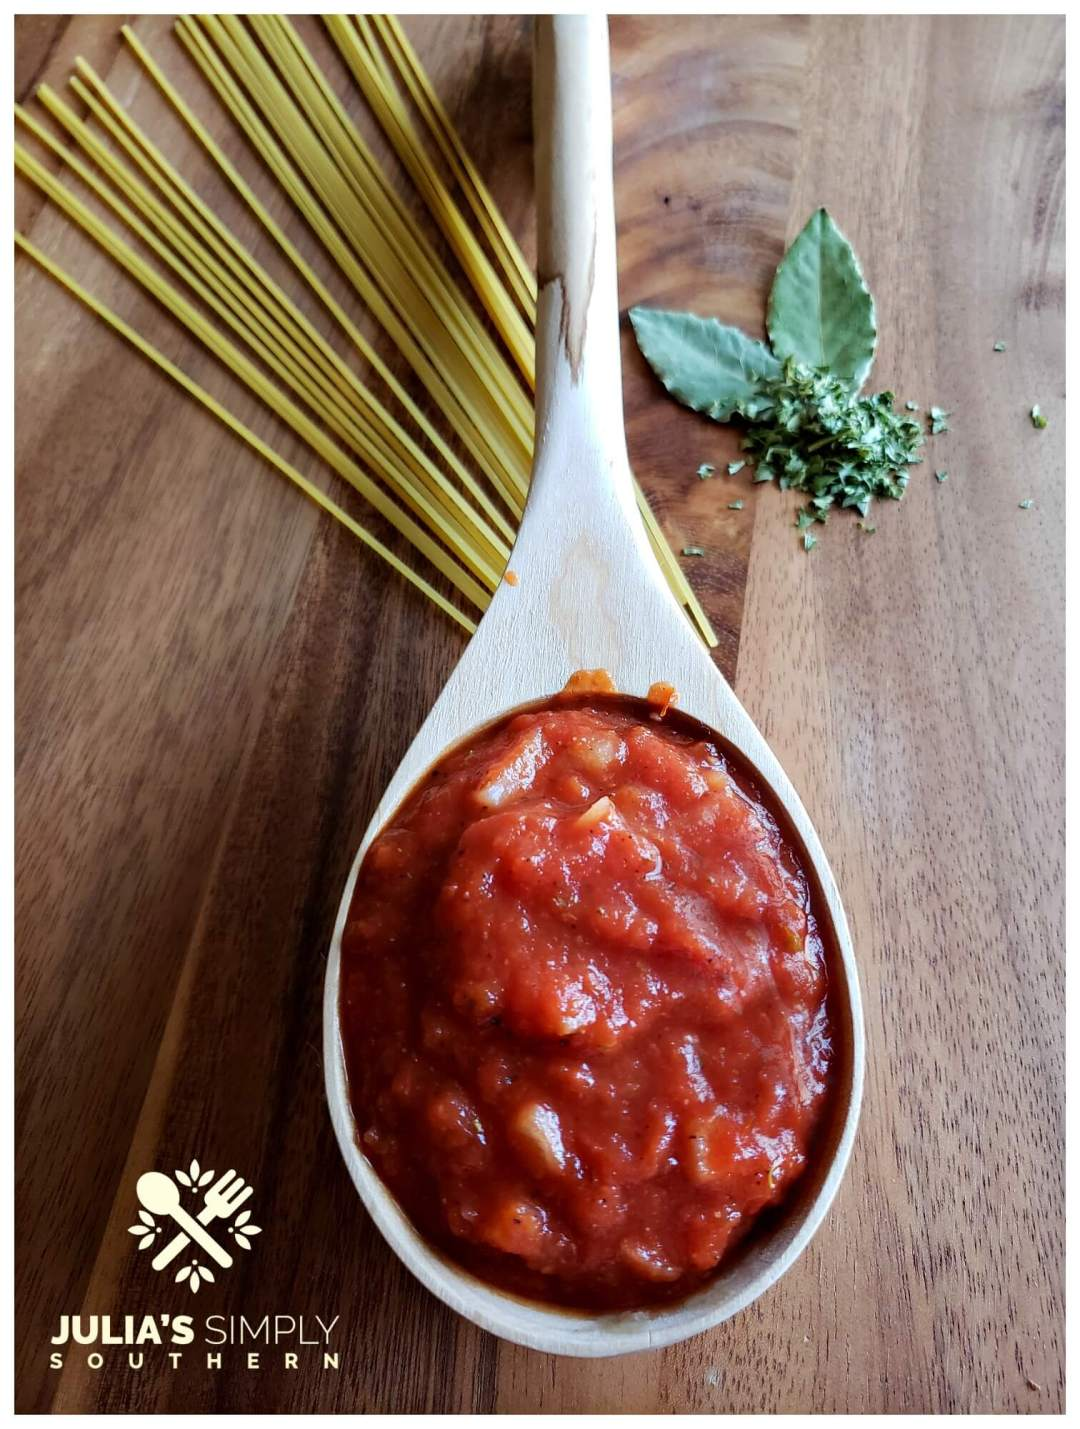 Delicious marinara sauce from canned crushed tomatoes